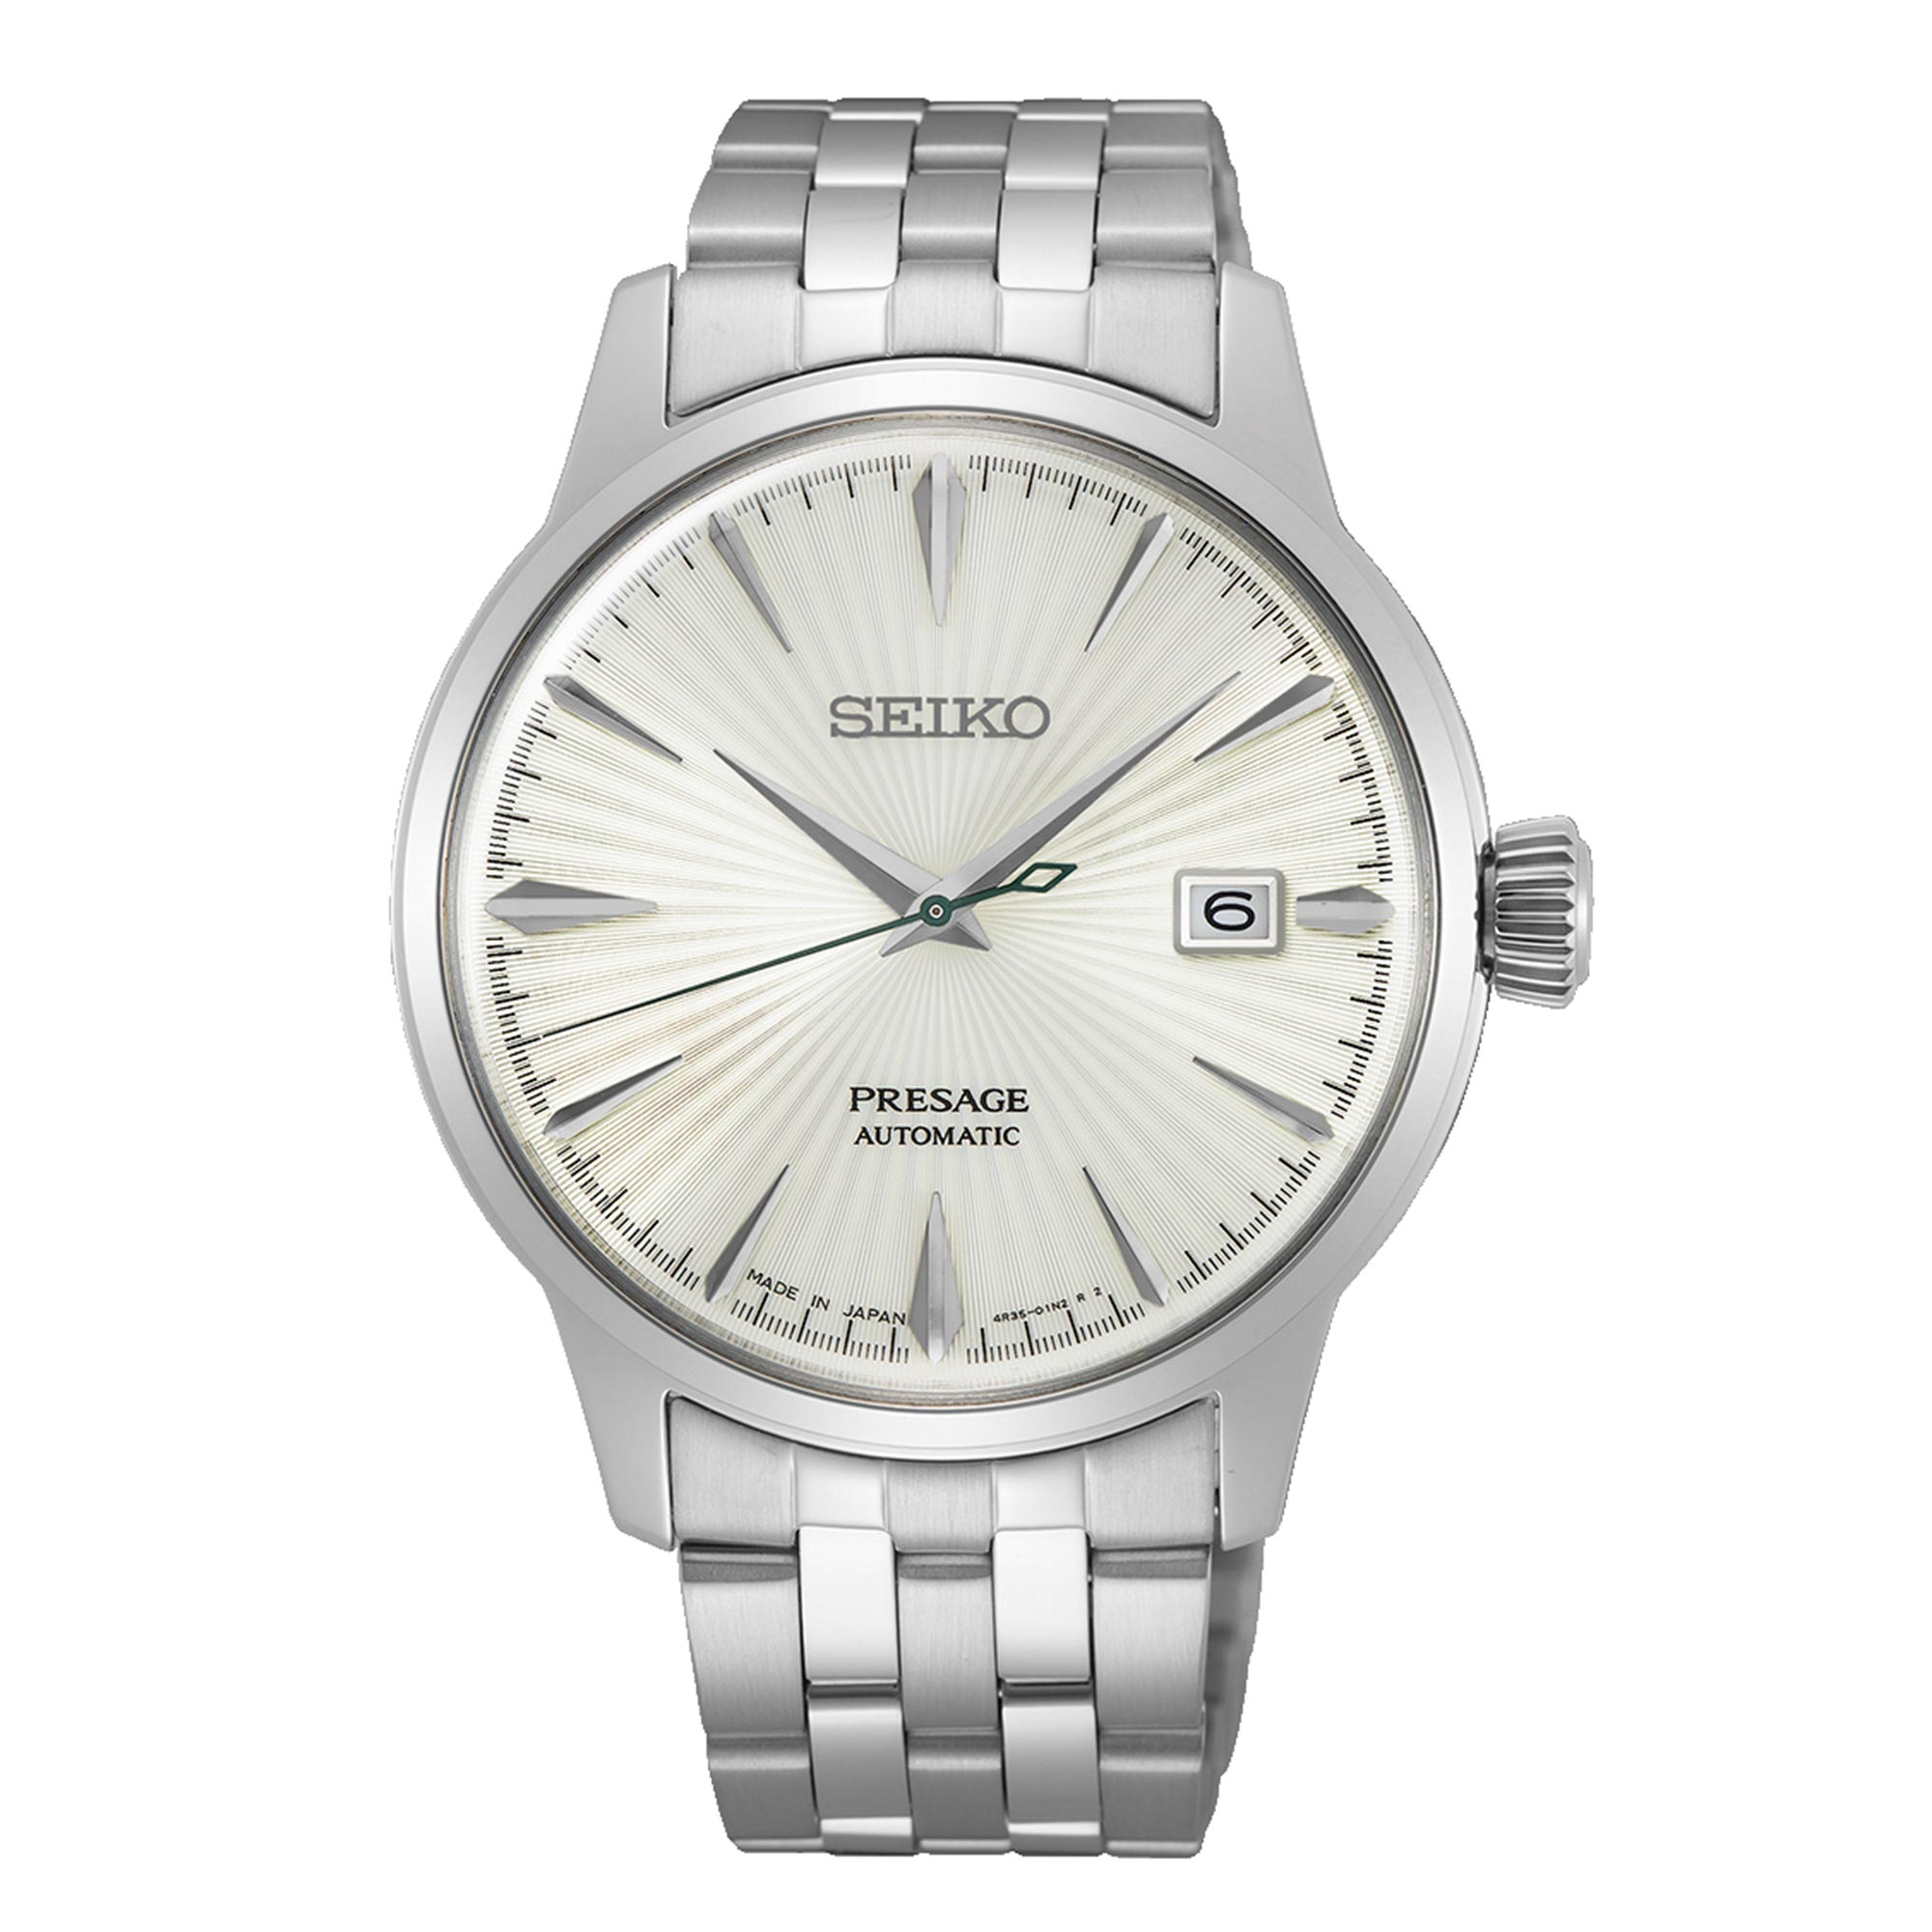 Seiko Presage Cocktail Time The Martini Automatic Movement White Dial Stainless Steel Bracelet SRPG23J1